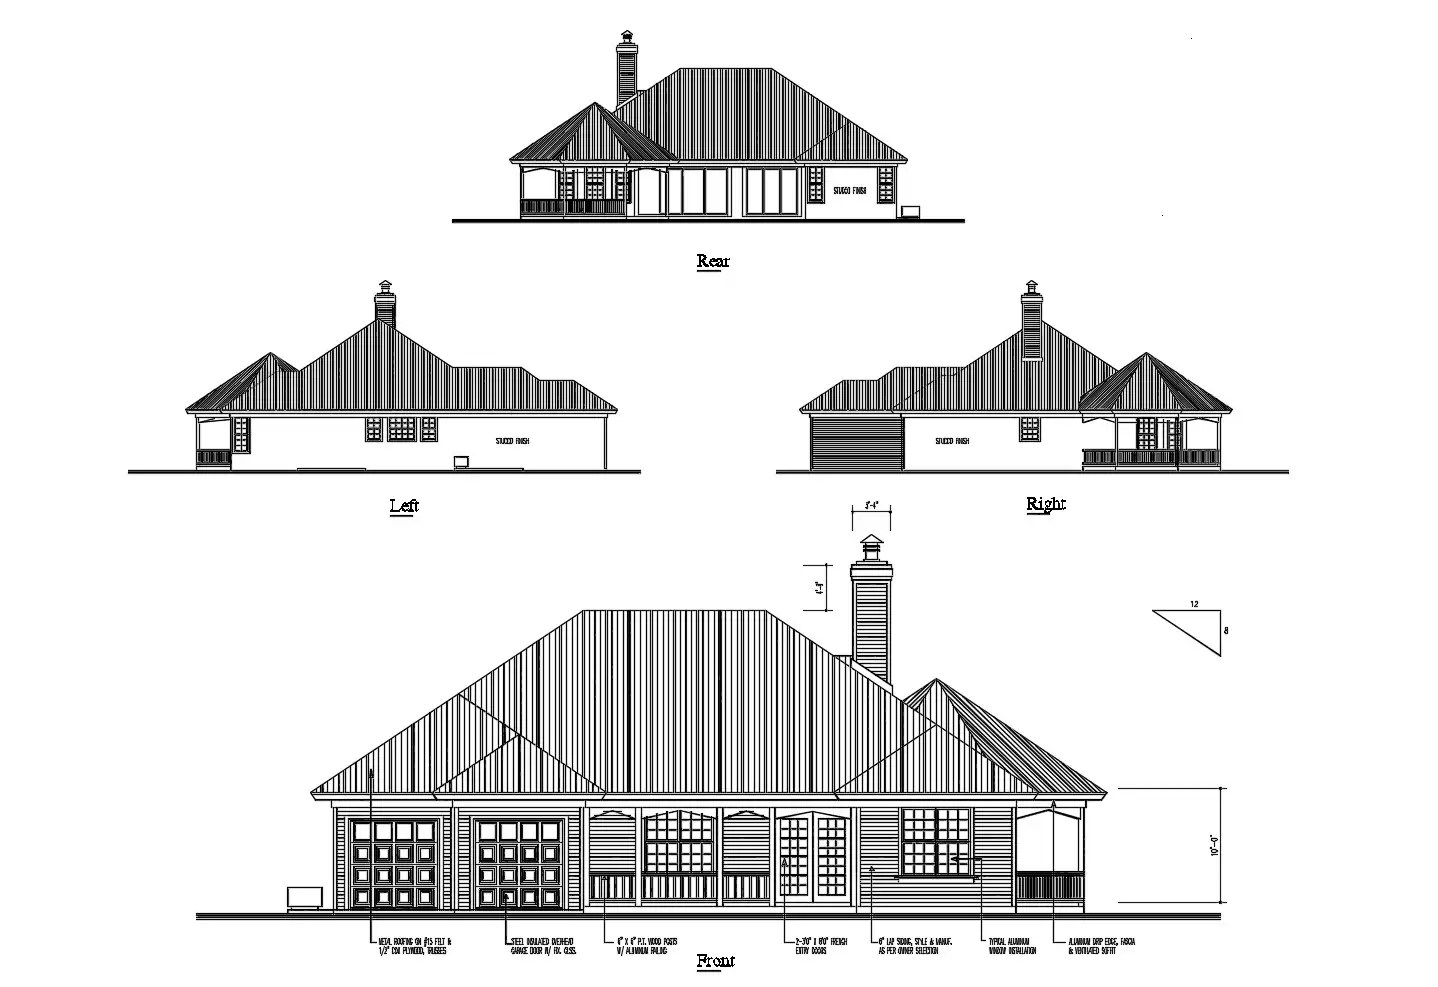 Elevation Drawing Of The Bungalow Design In Dwg File